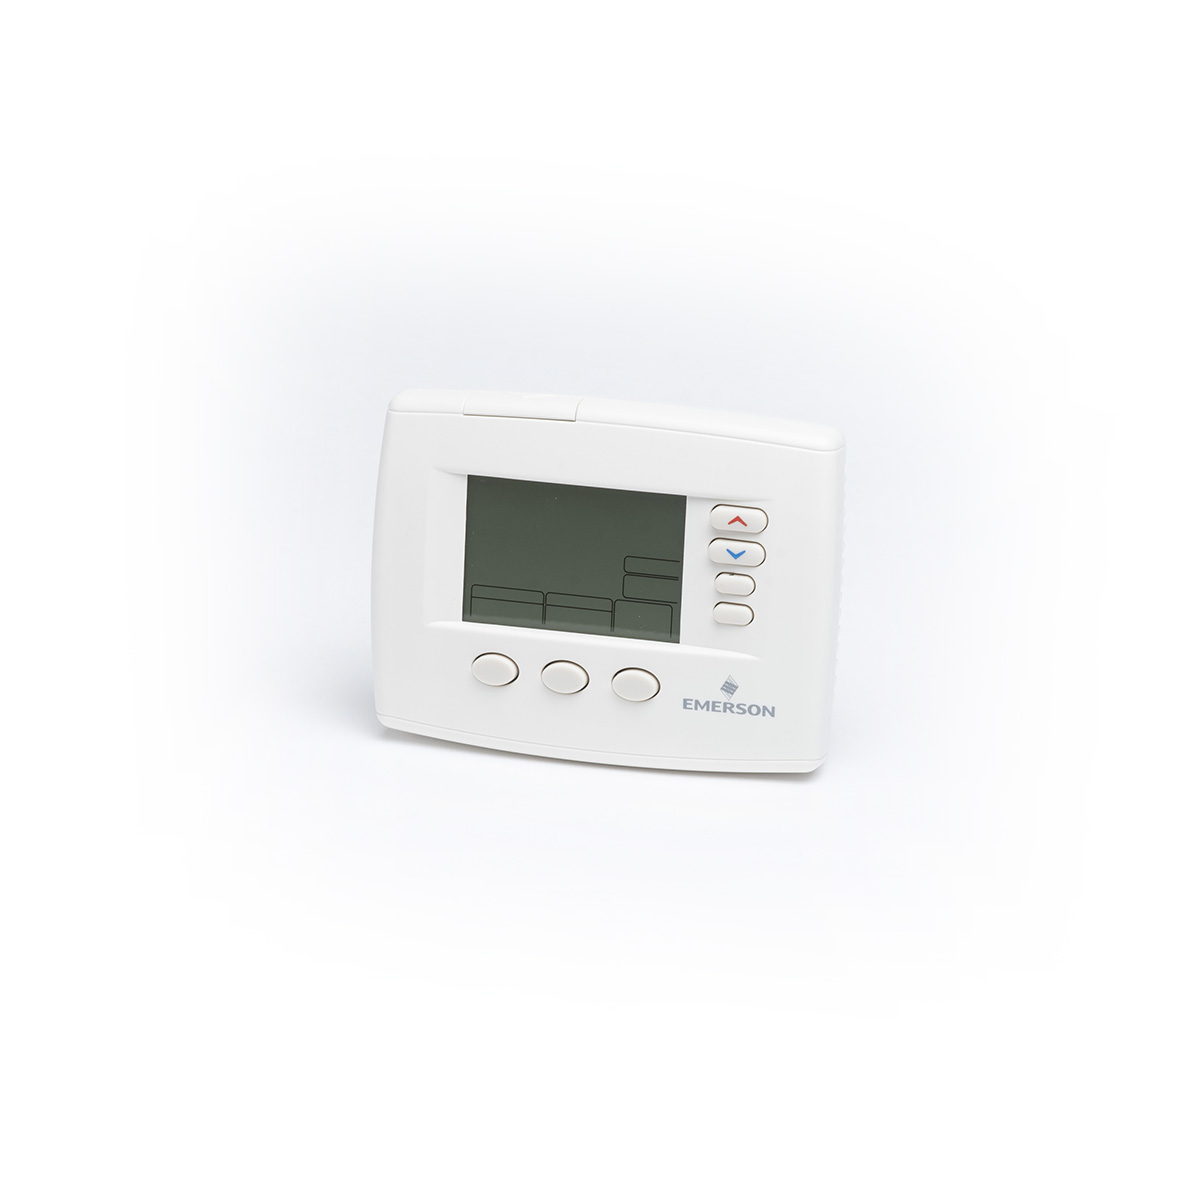 Thermostat, Universal, Multi-Stage 2-Heat/1-Cool, Programmable